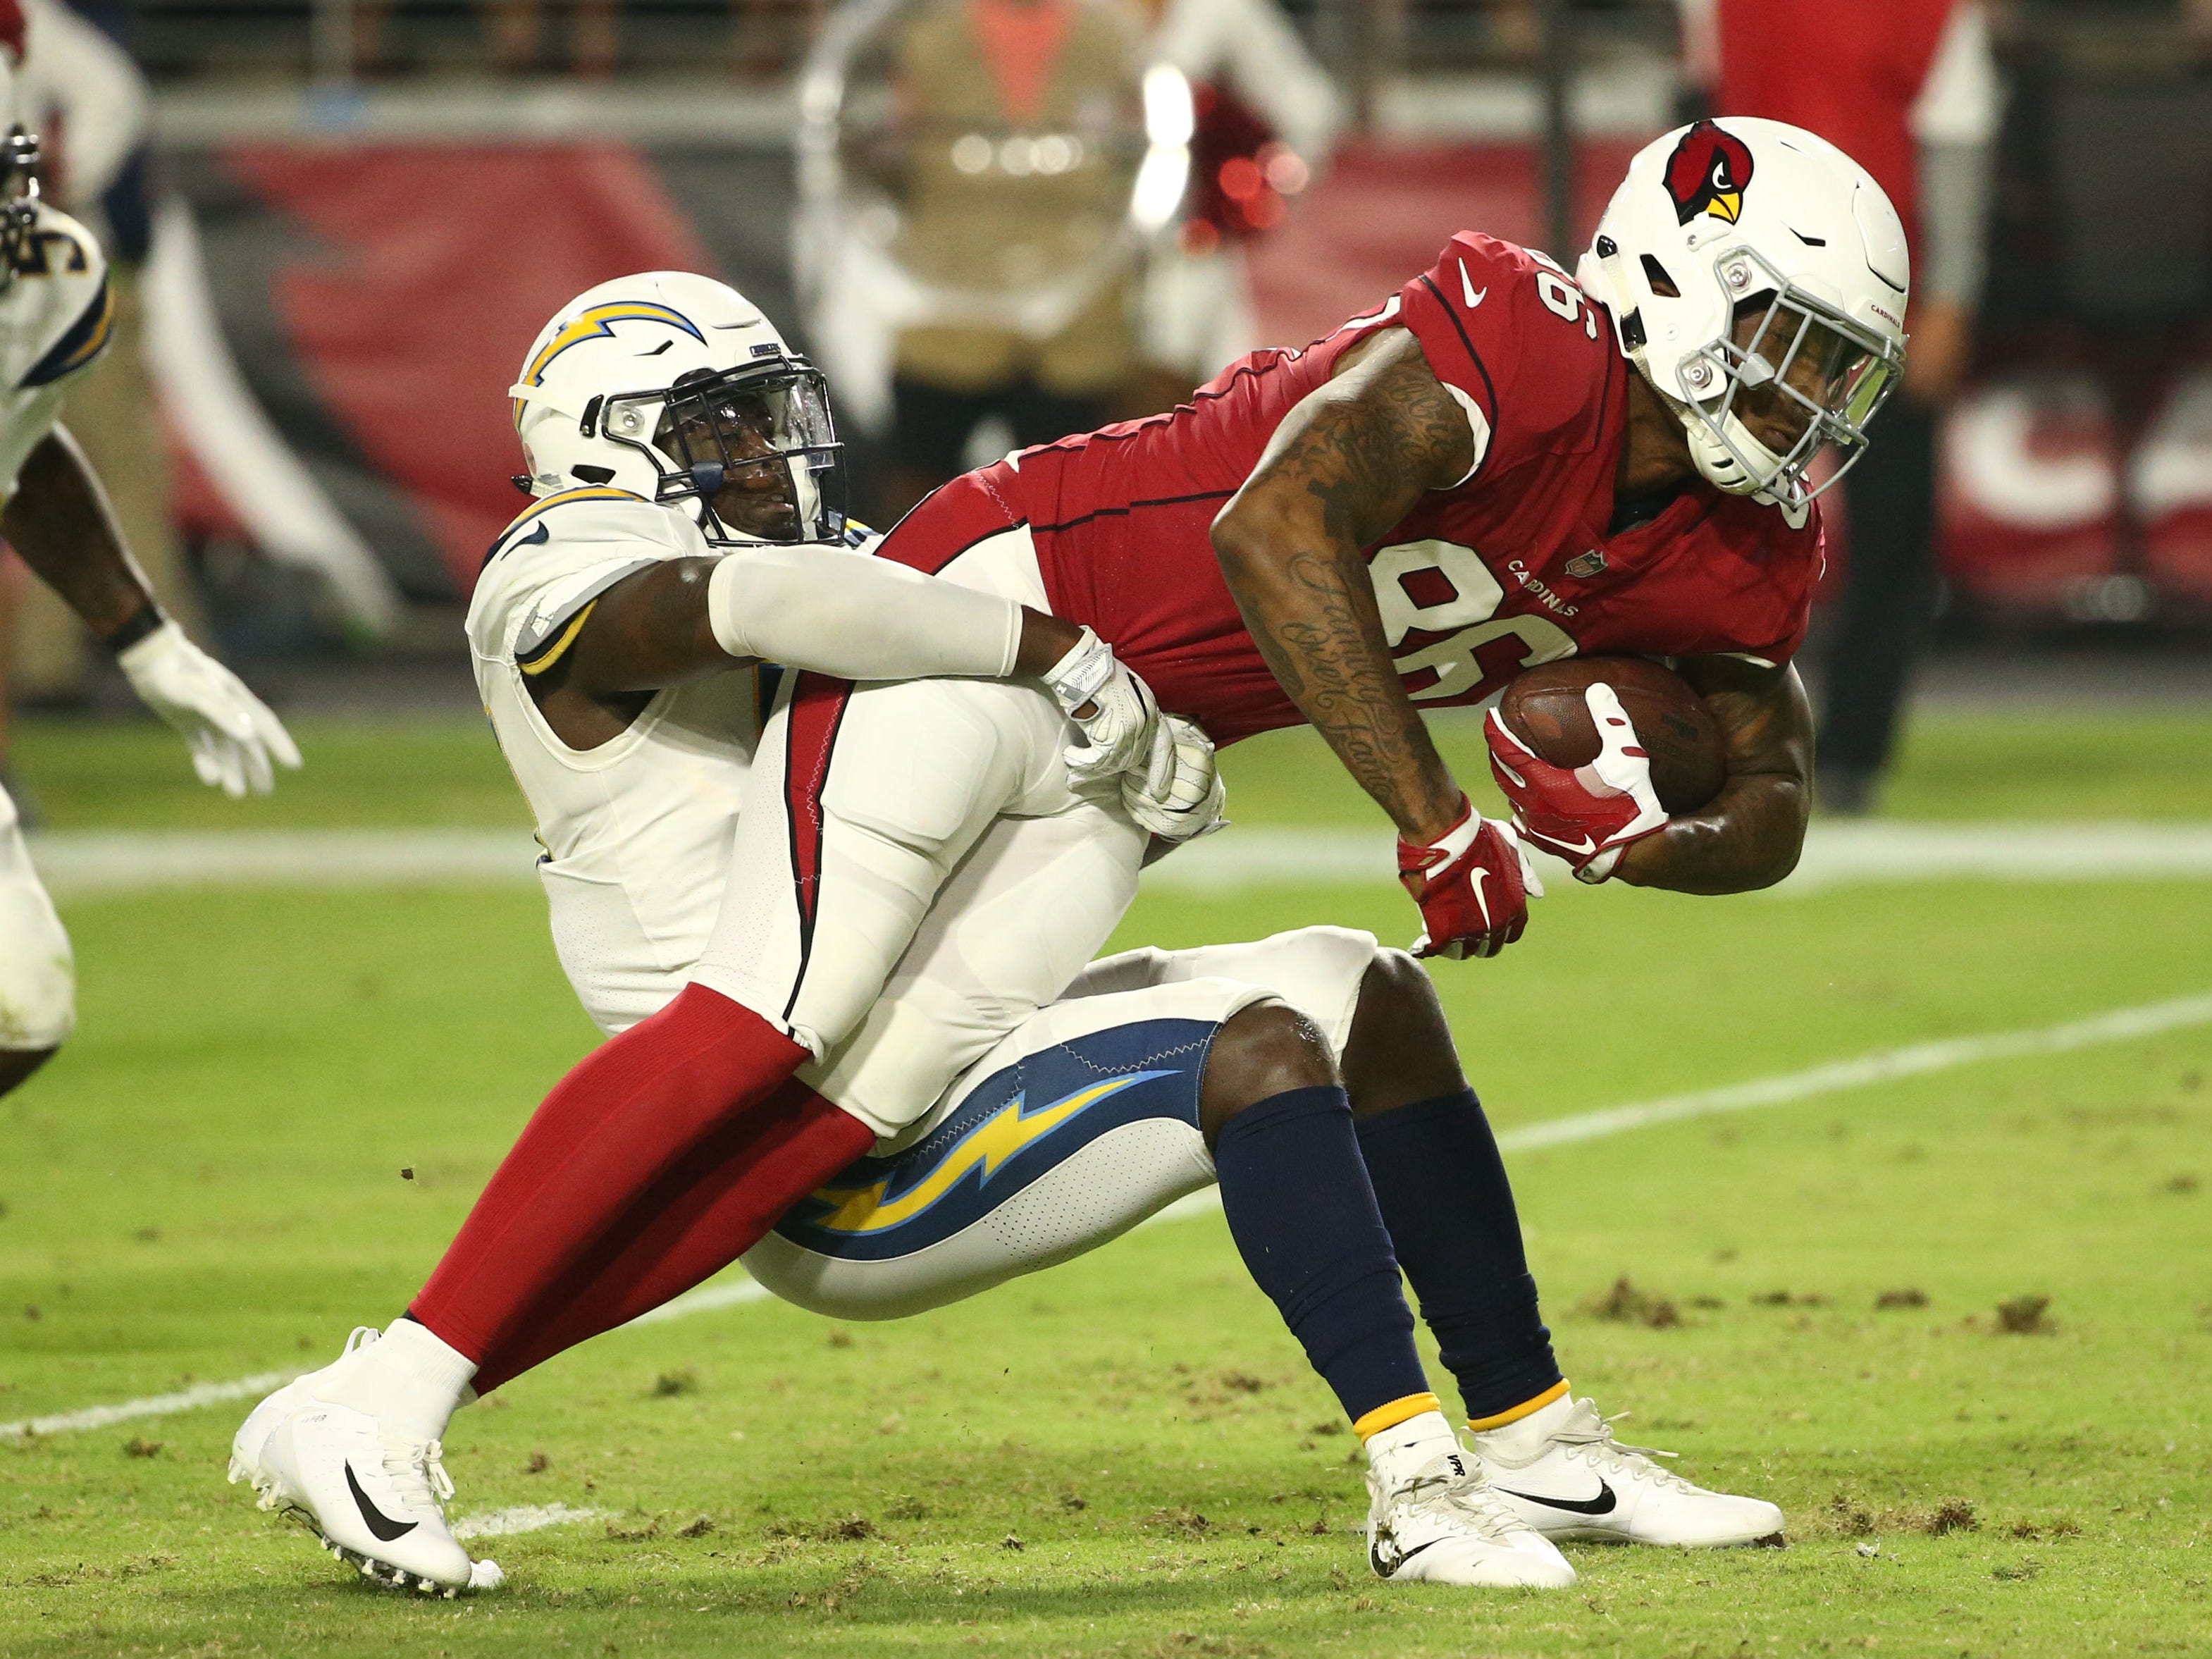 Arizona Cardinals Ricky Seals-Jones is tackled by the L.A. Chargers in the first half during a preseason NFL football game on Aug. 11, 2018 at University of Phoenix Stadium in Glendale, Ariz.